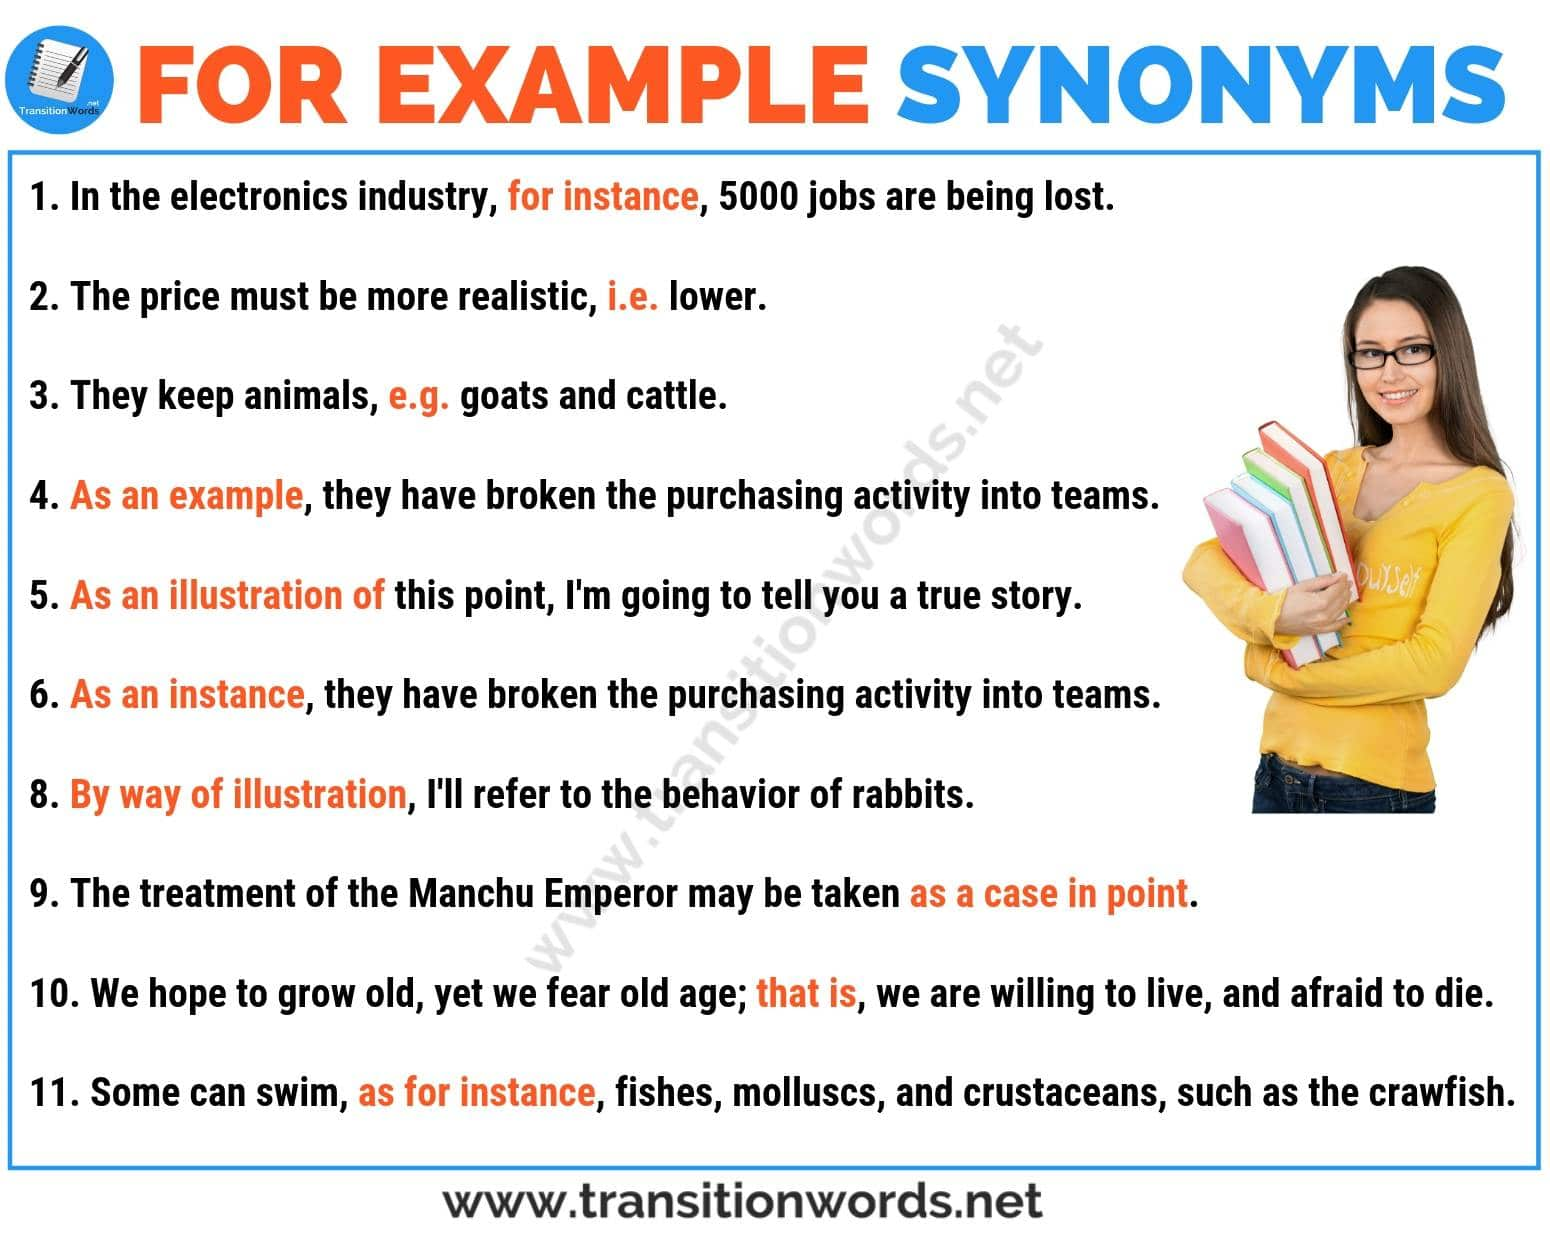 FOR EXAMPLE Synonym: List of 26 Powerful Synonyms for For Example